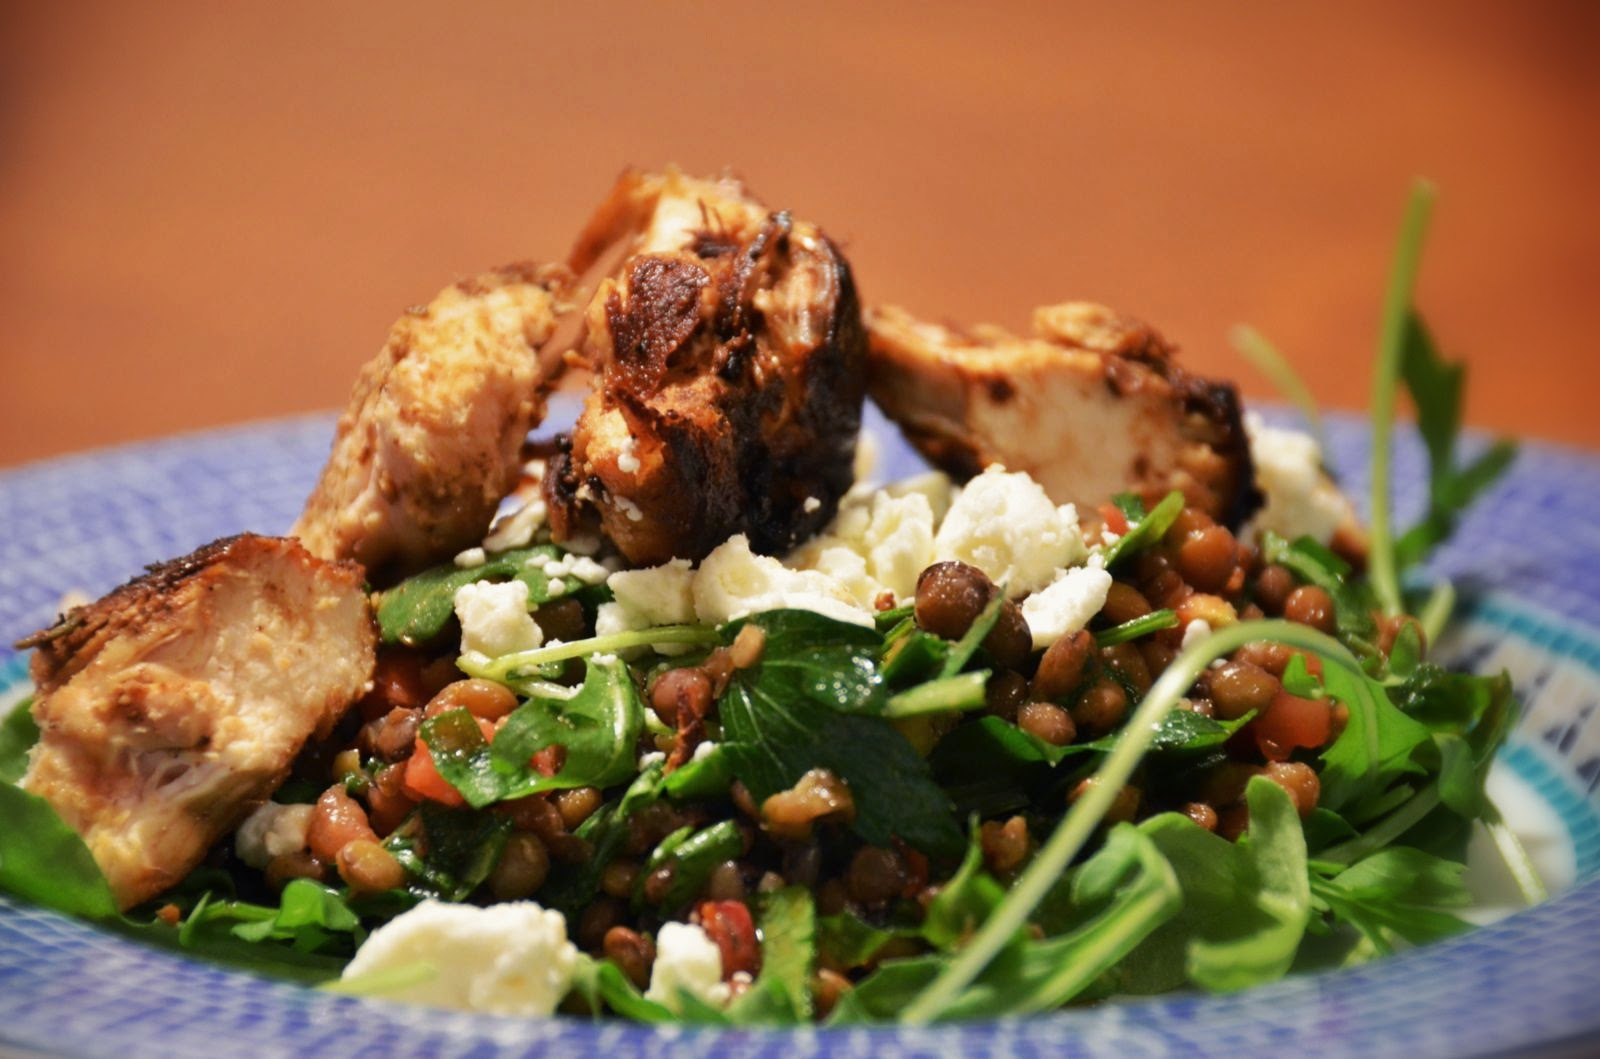 Lentil and Feta Salad with Pan Seared Chicken and Arugula | Cheesy Pennies